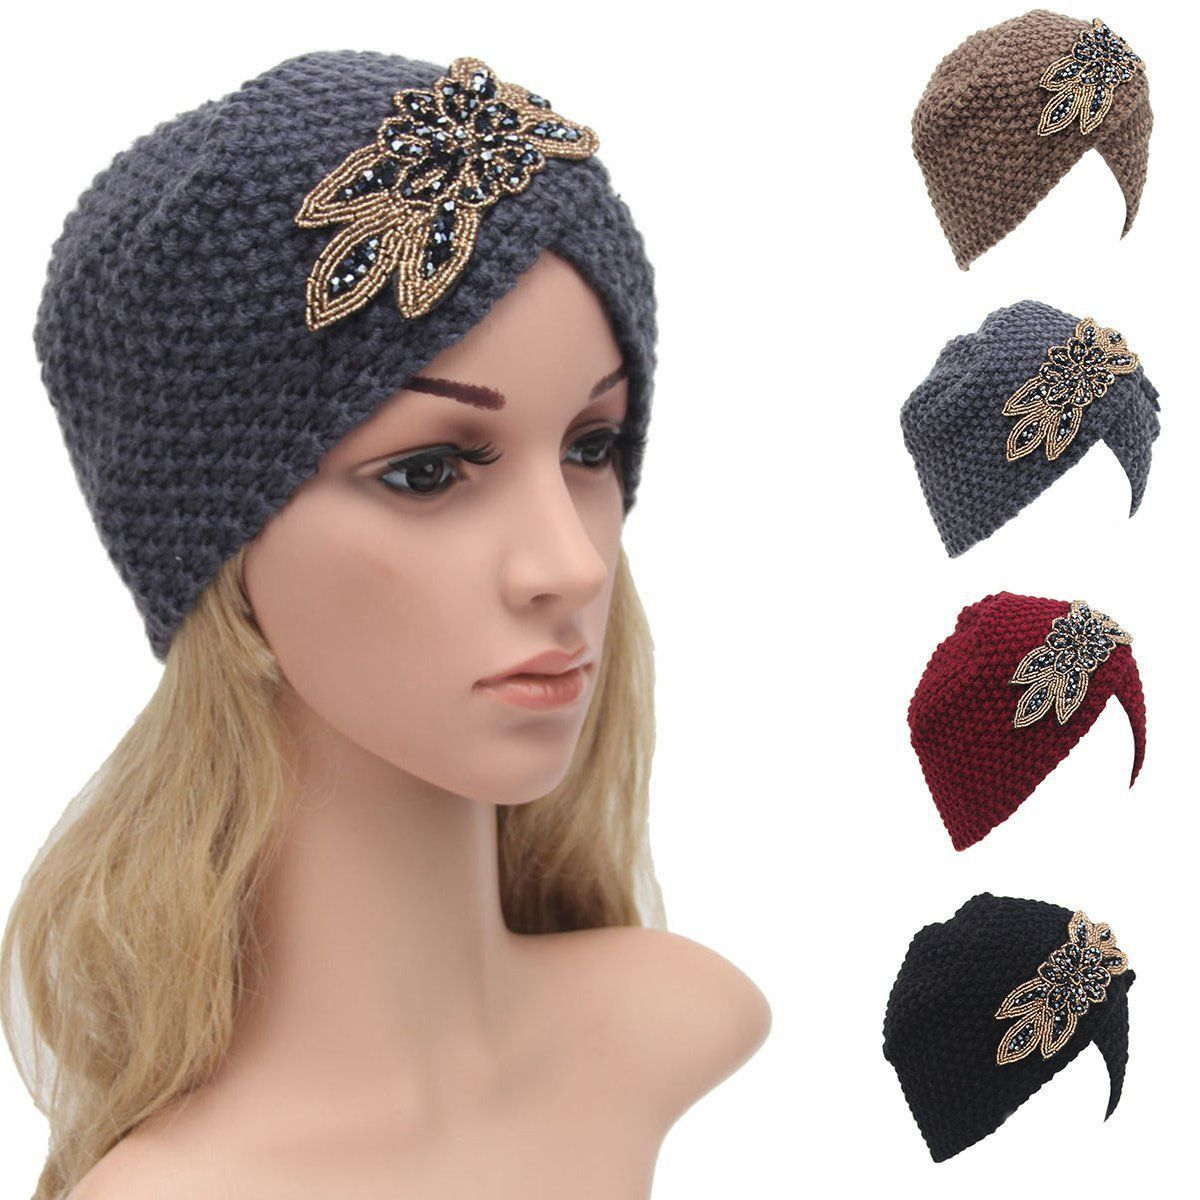 bc78cddc620fc Women Beret Braided Baggy Beanie Crochet Warm Winter Hat Ski Cap Wool Hat  Knit